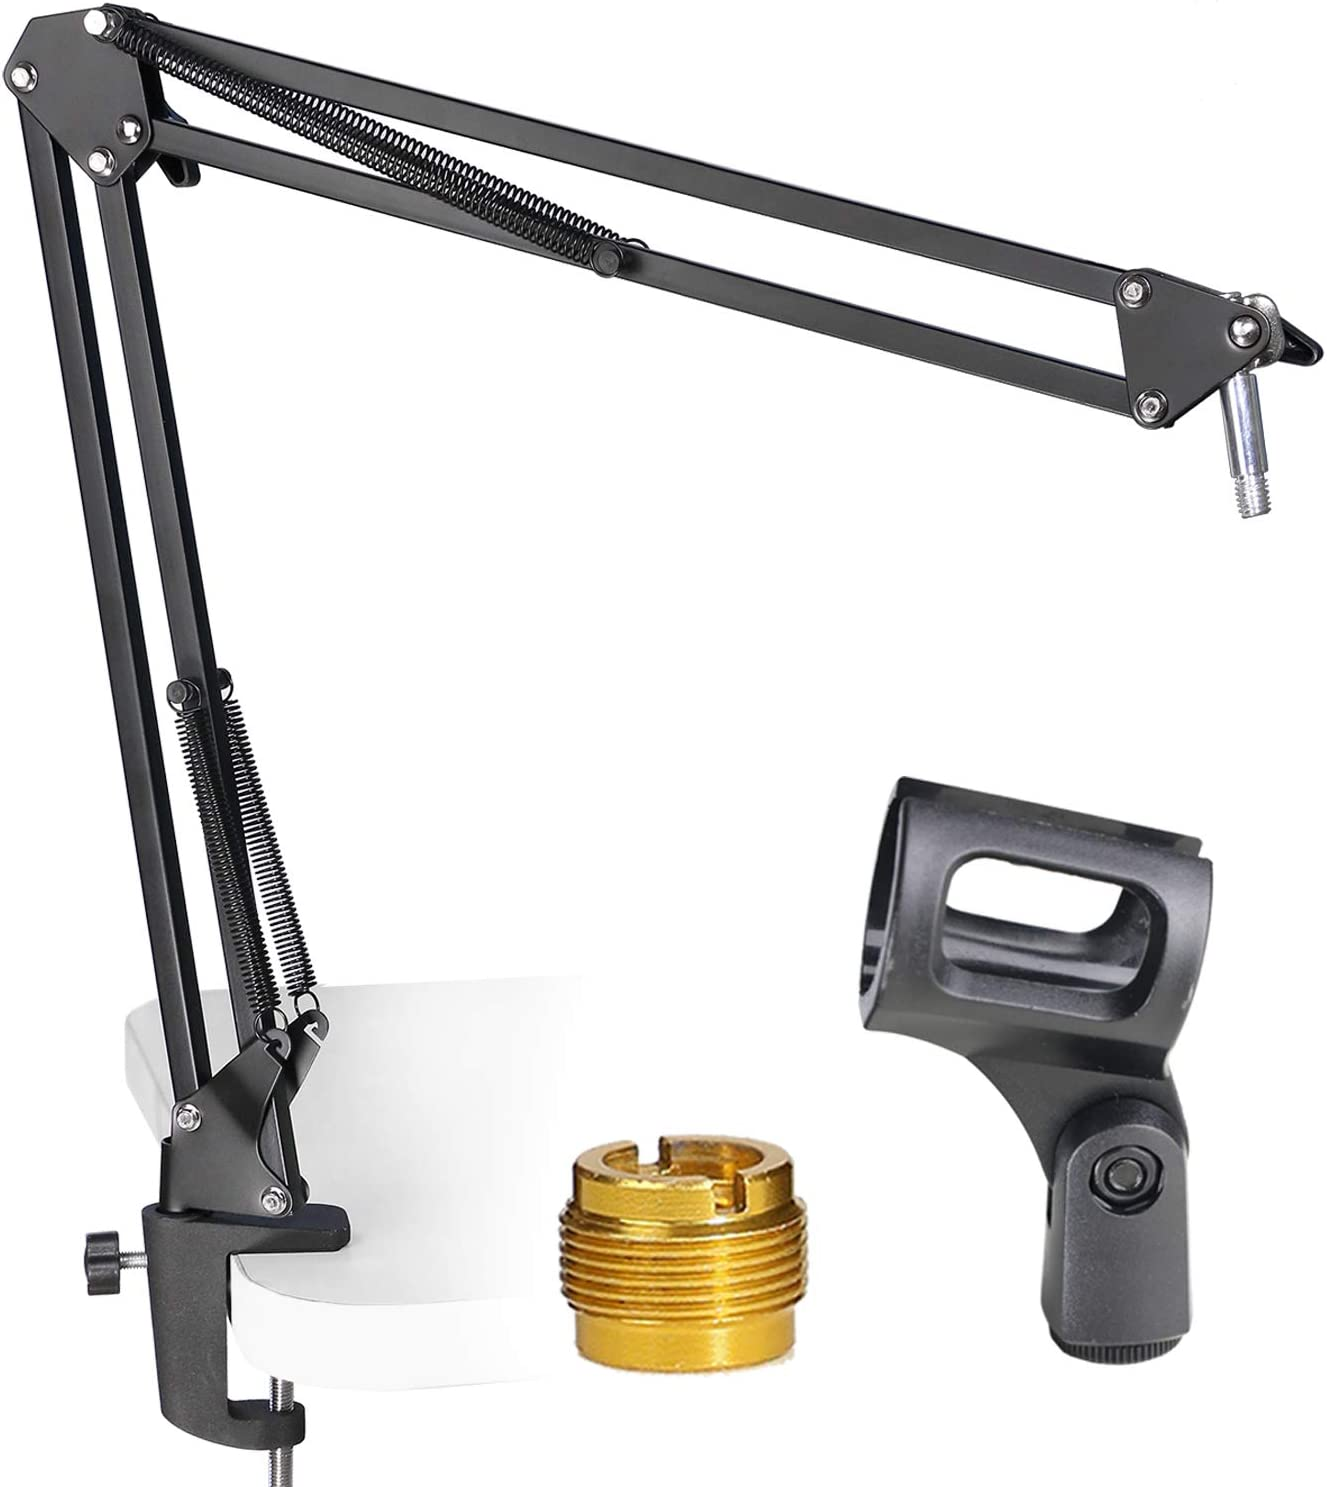 Mic Boom Arm Stand Adjustable Microphone Stand Swivel Mount for Blue Snowball AT2020 and Other Mic by YOUSHARES